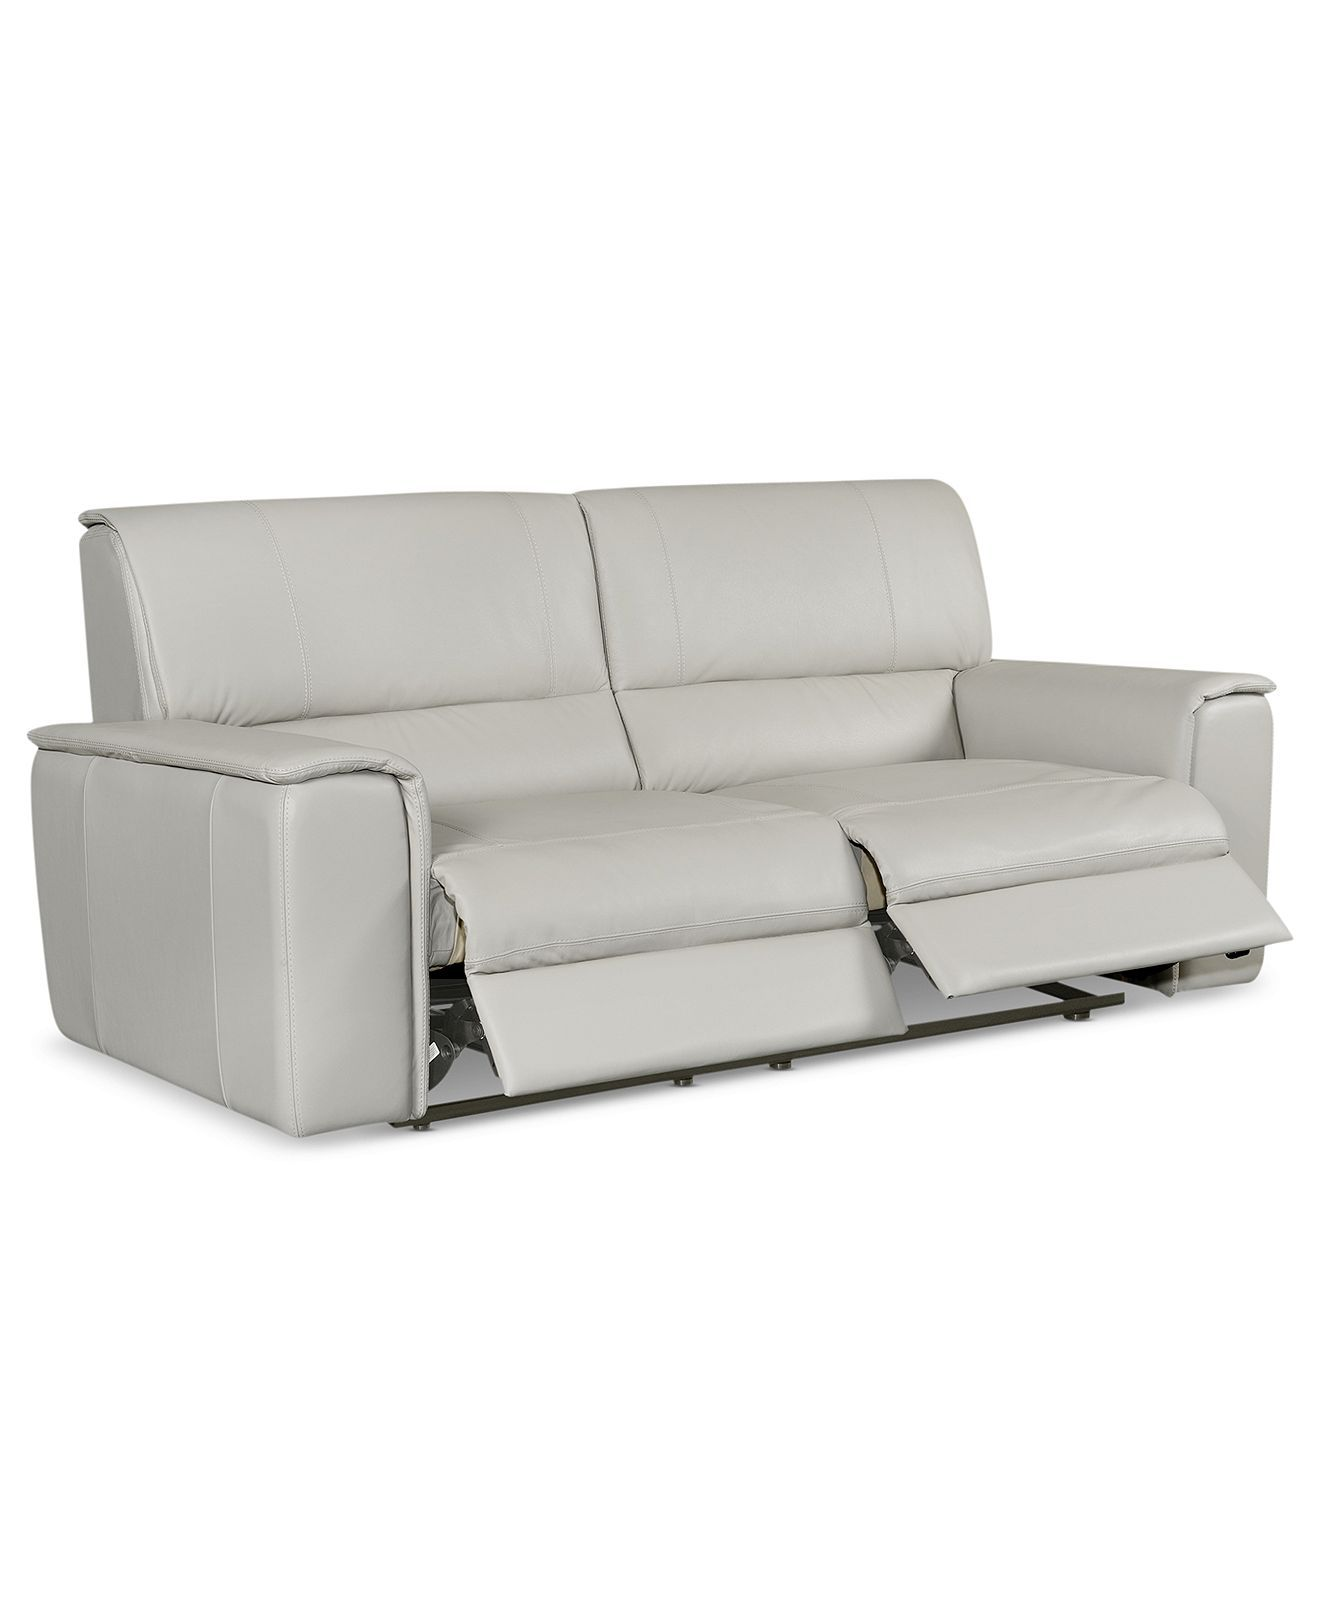 Deion Leather Reclining Sofa, Power Recliner X X   Furniture   Macyu0027s